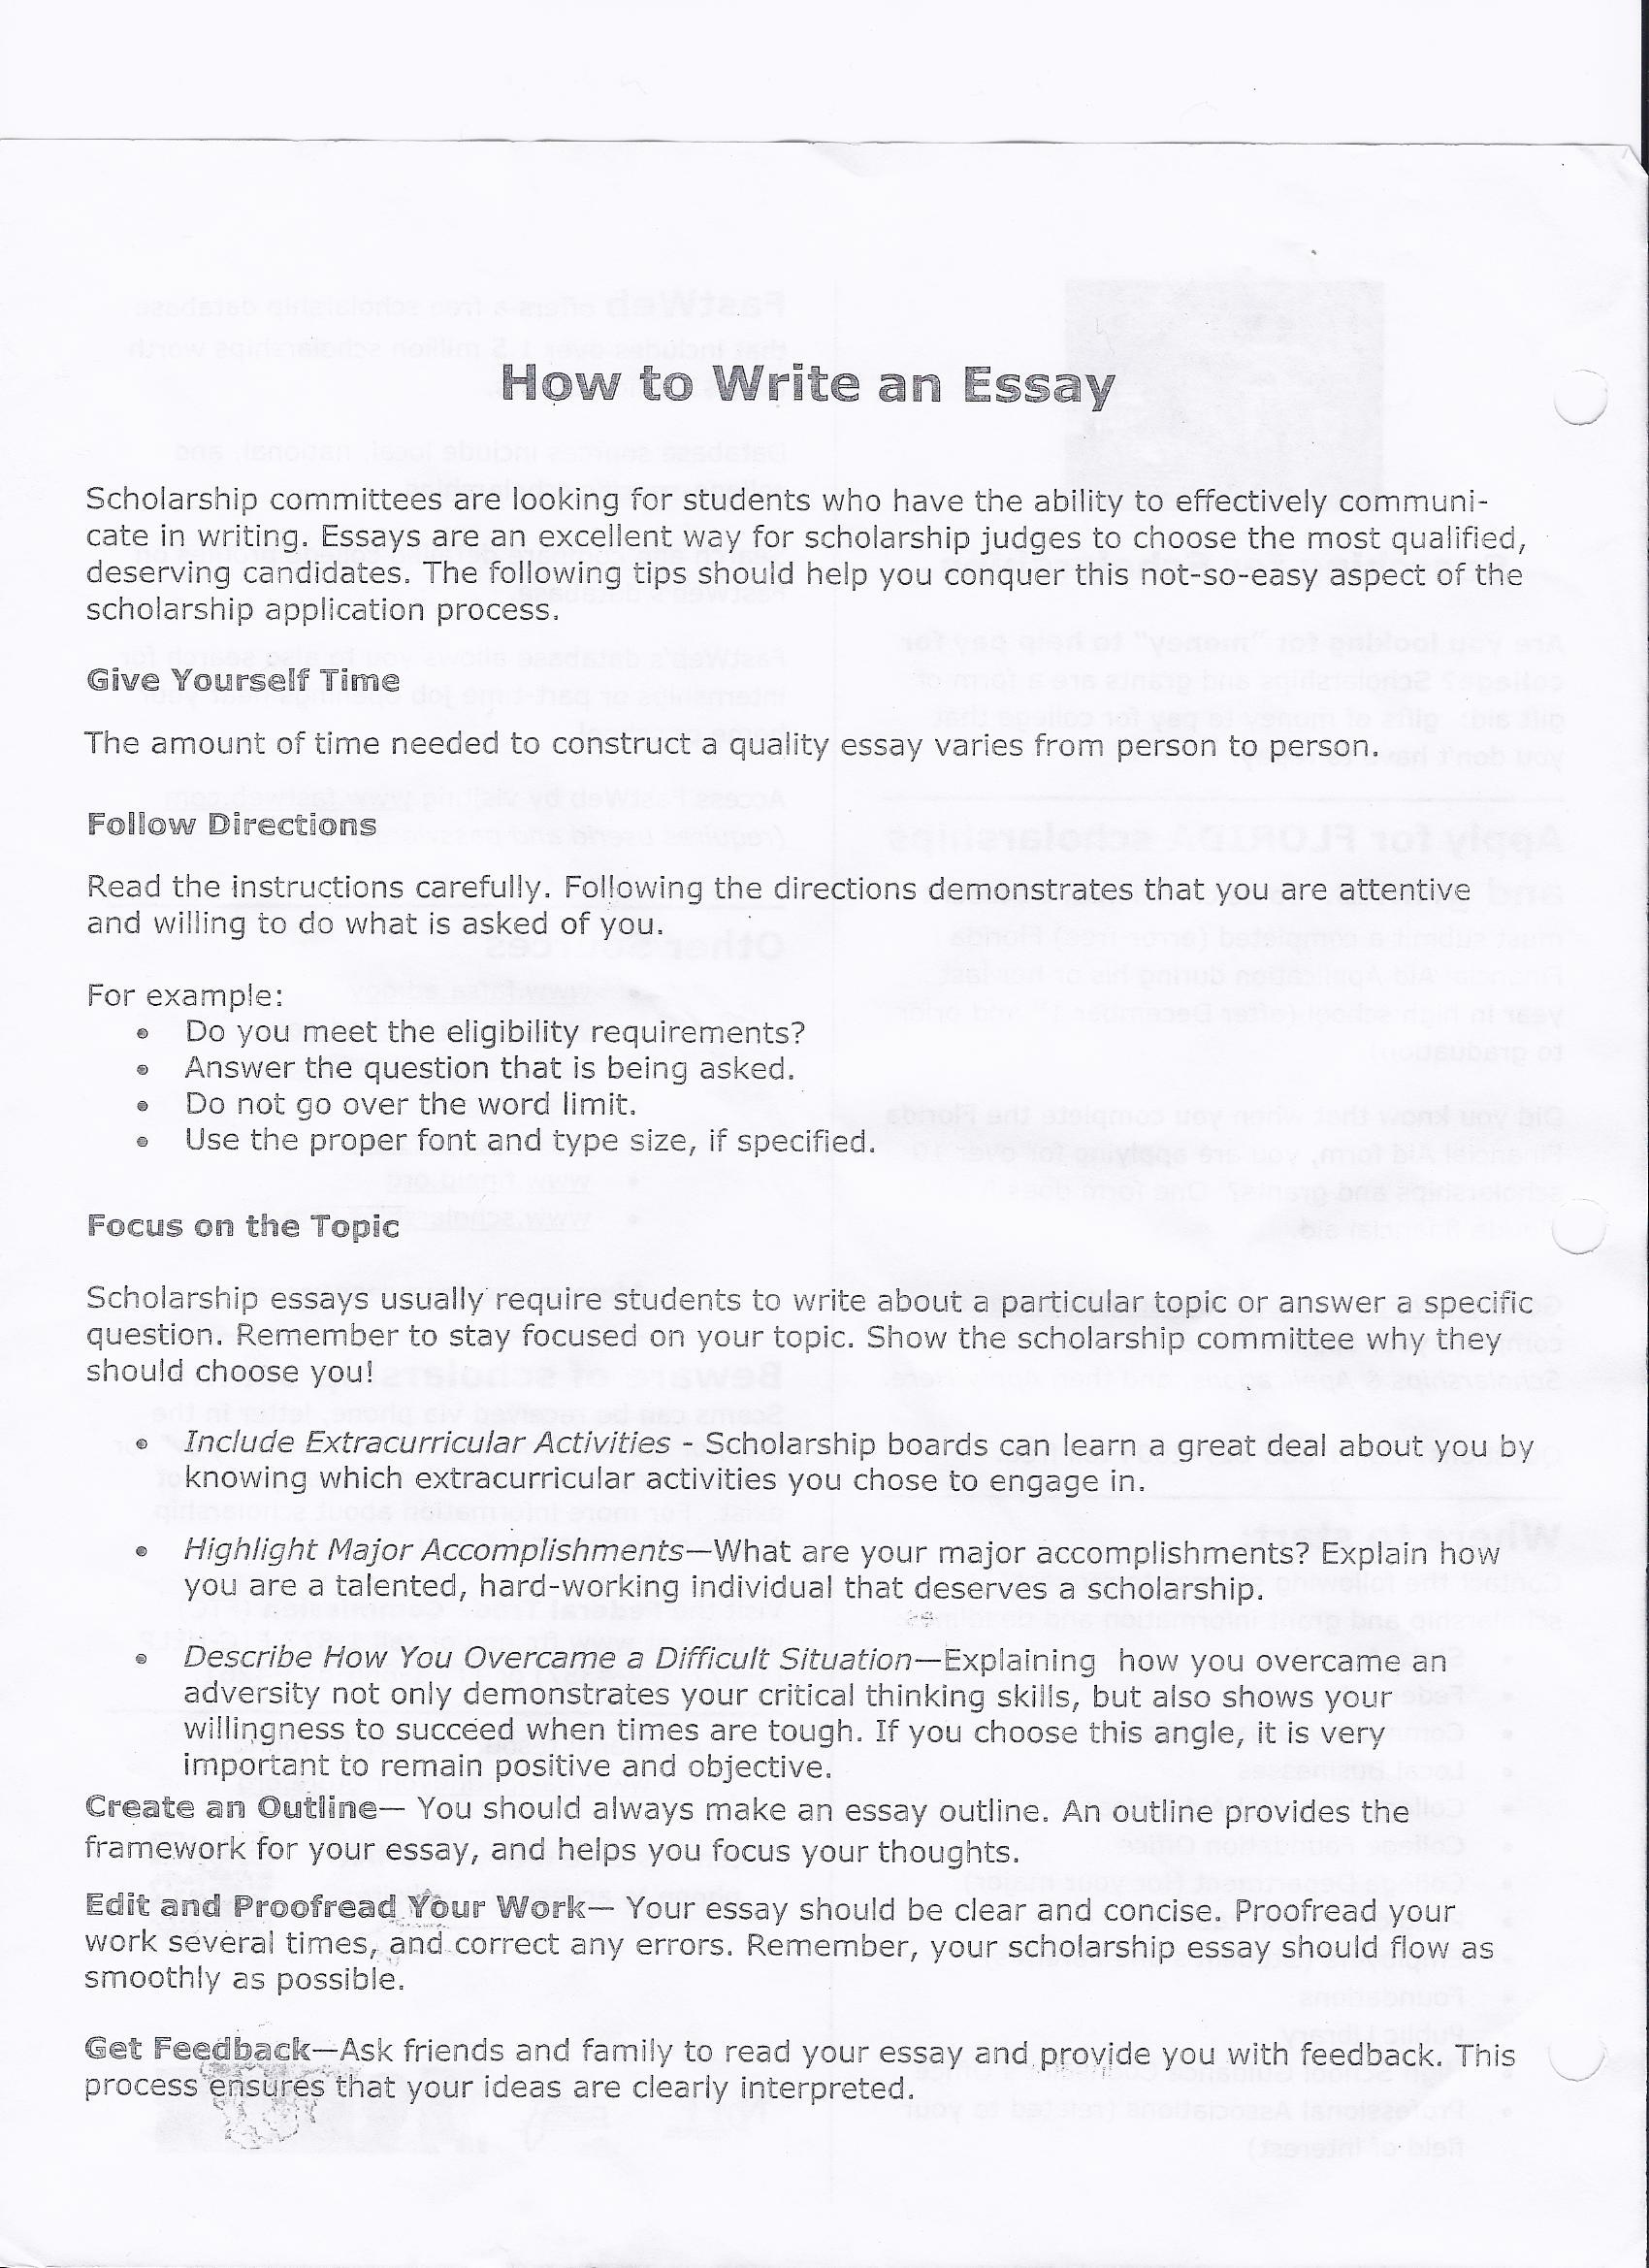 Graduate School Admission Essay Samples High School Essay Composing Assist Essaypaycom The Help Movie Essay also Elephant Essay High School Essay Composing Assist Essaypaycom      Essays On Current Issues